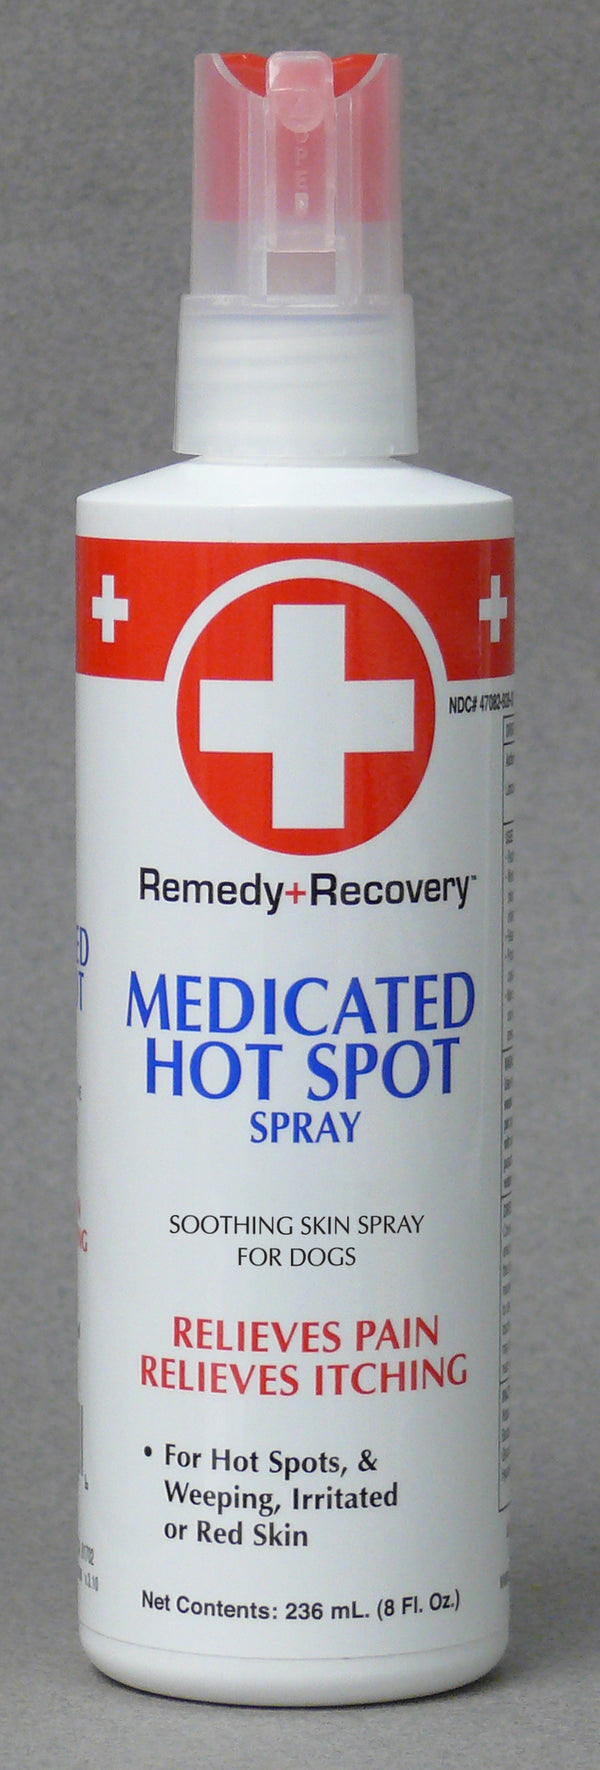 Cardinal Remedy + Recovery Medicated Hot Spot Spray for Dogs Cats Pets